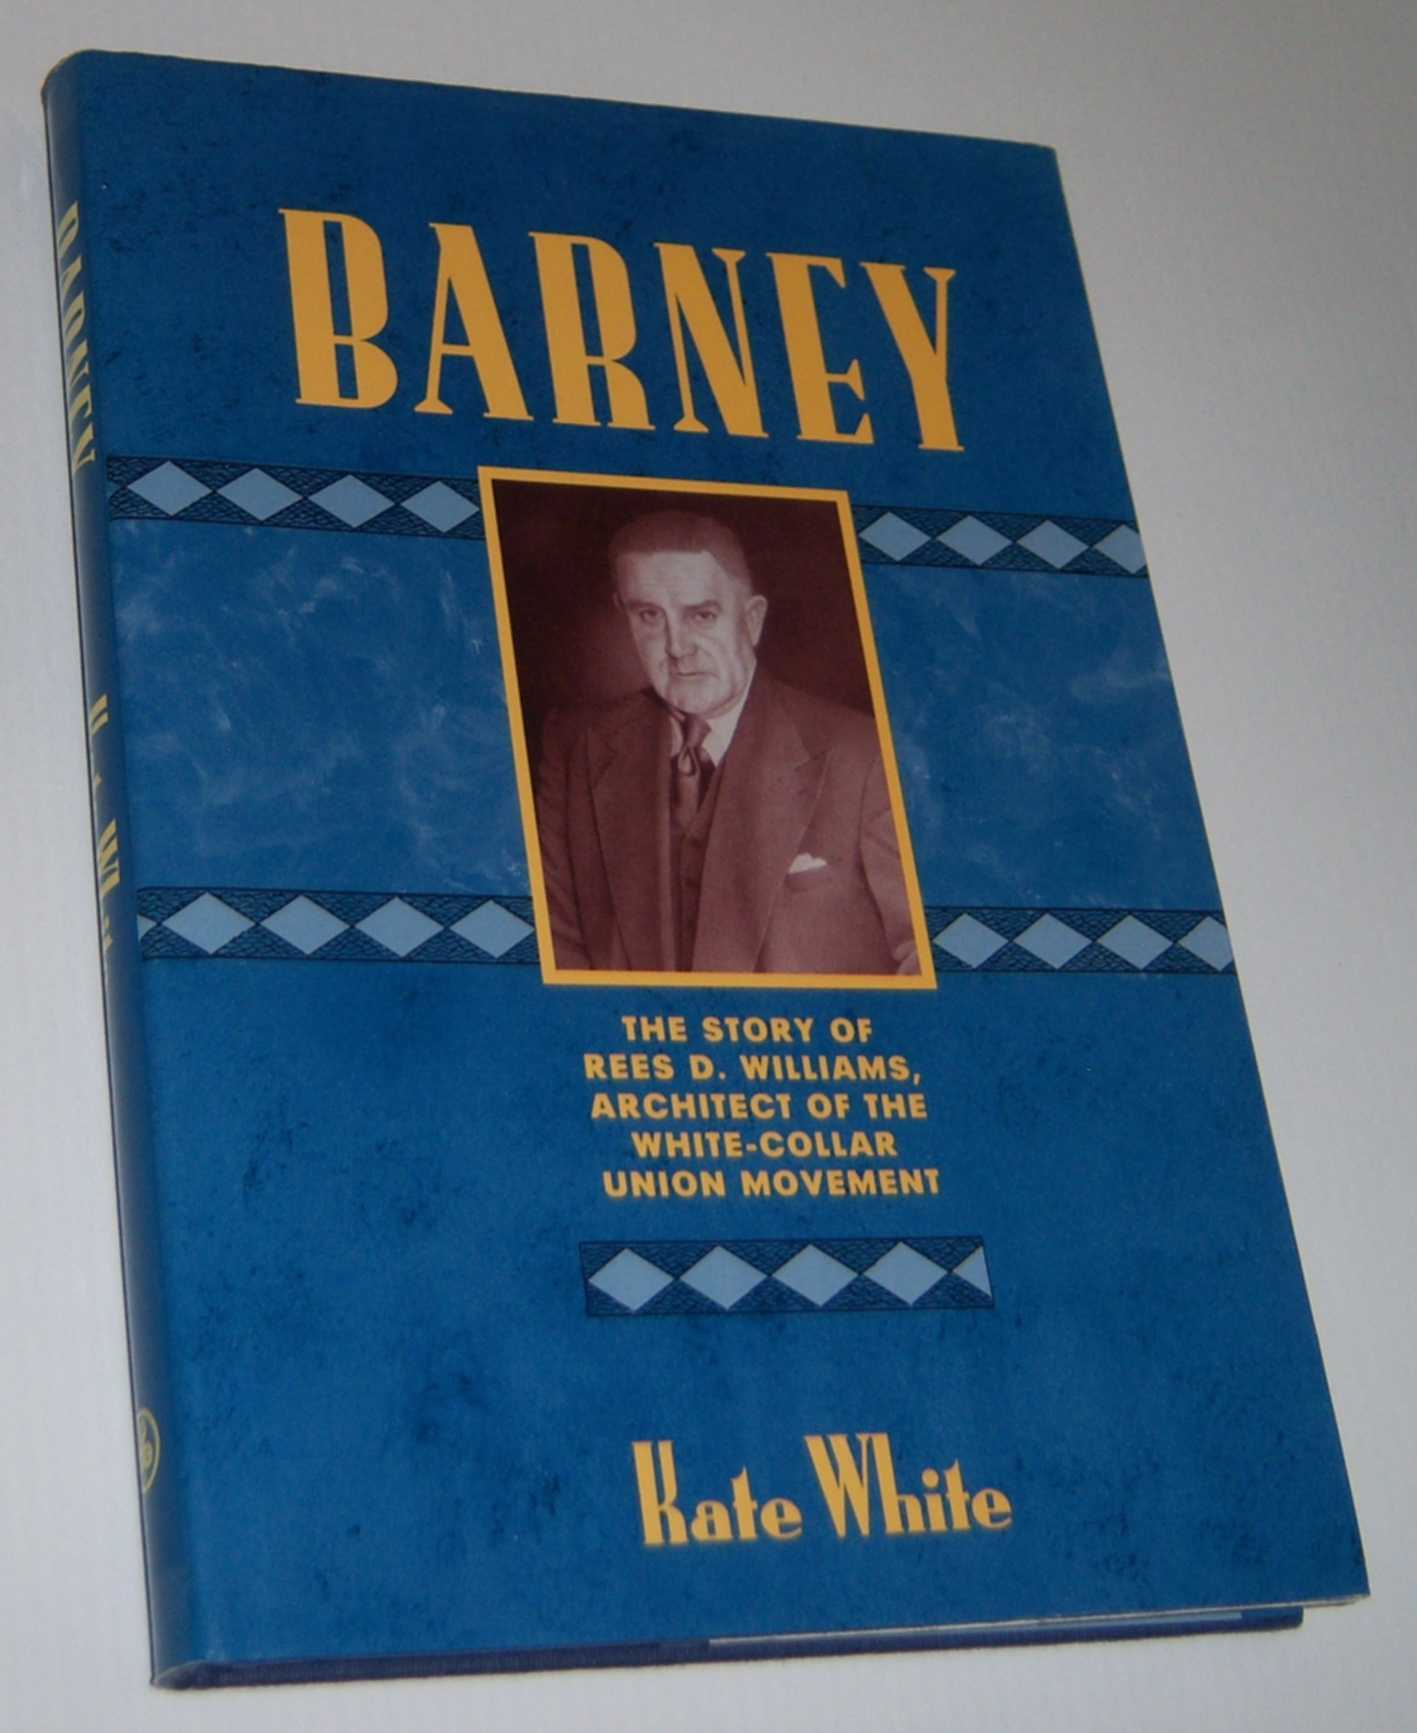 Image for BARNEY: The Story of Rees D. Williams, Architect of the White-Collar Union Movement.